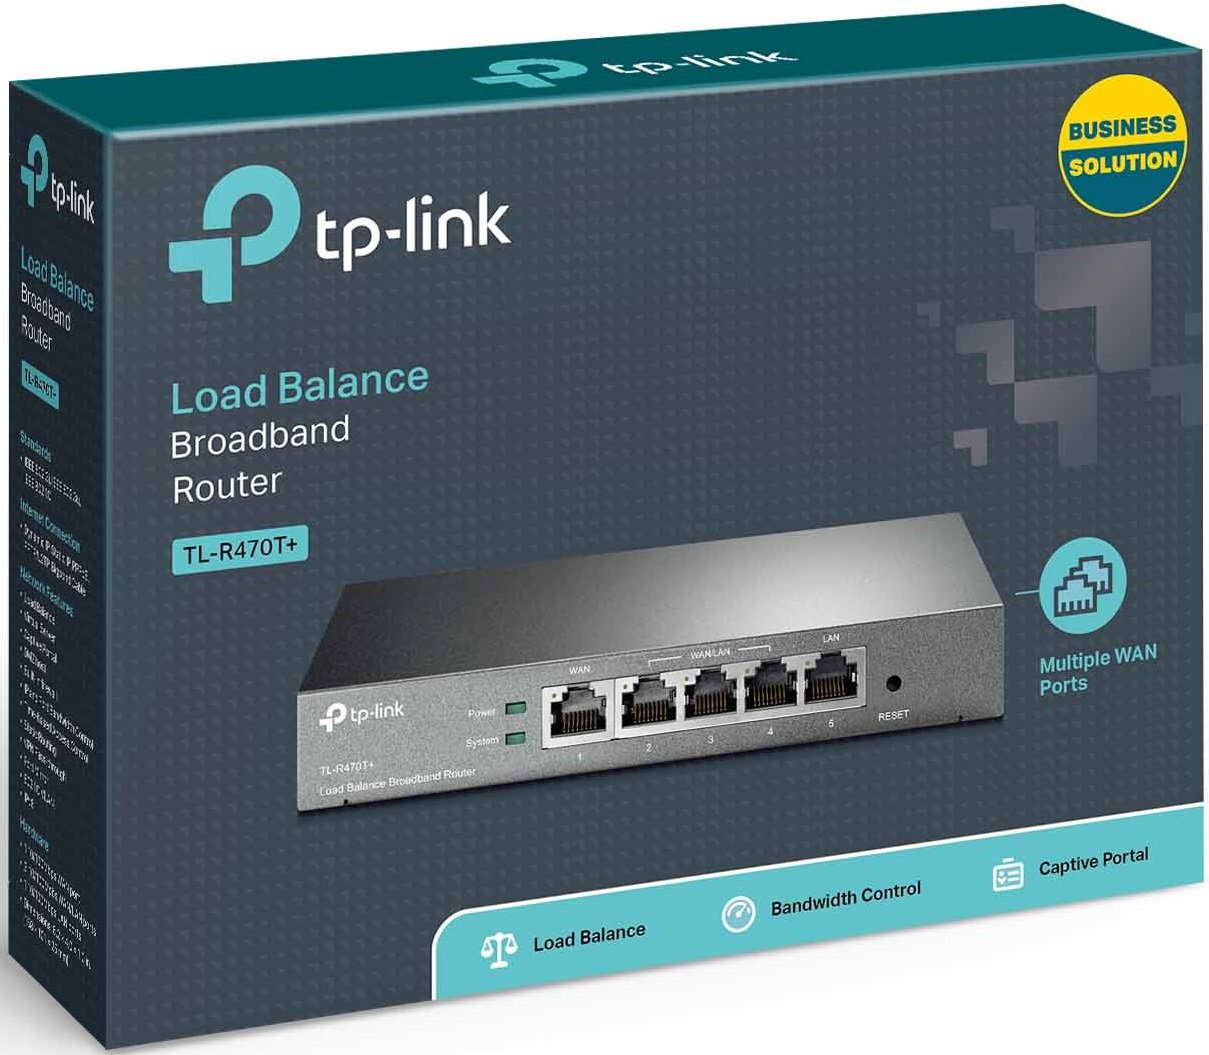 TP-Link SafeStream TL-R470T+ Fast Ethernet Load Balance Broadband Router, supports up to 4 WAN ports/VPN pass-through/ IPv6 routing